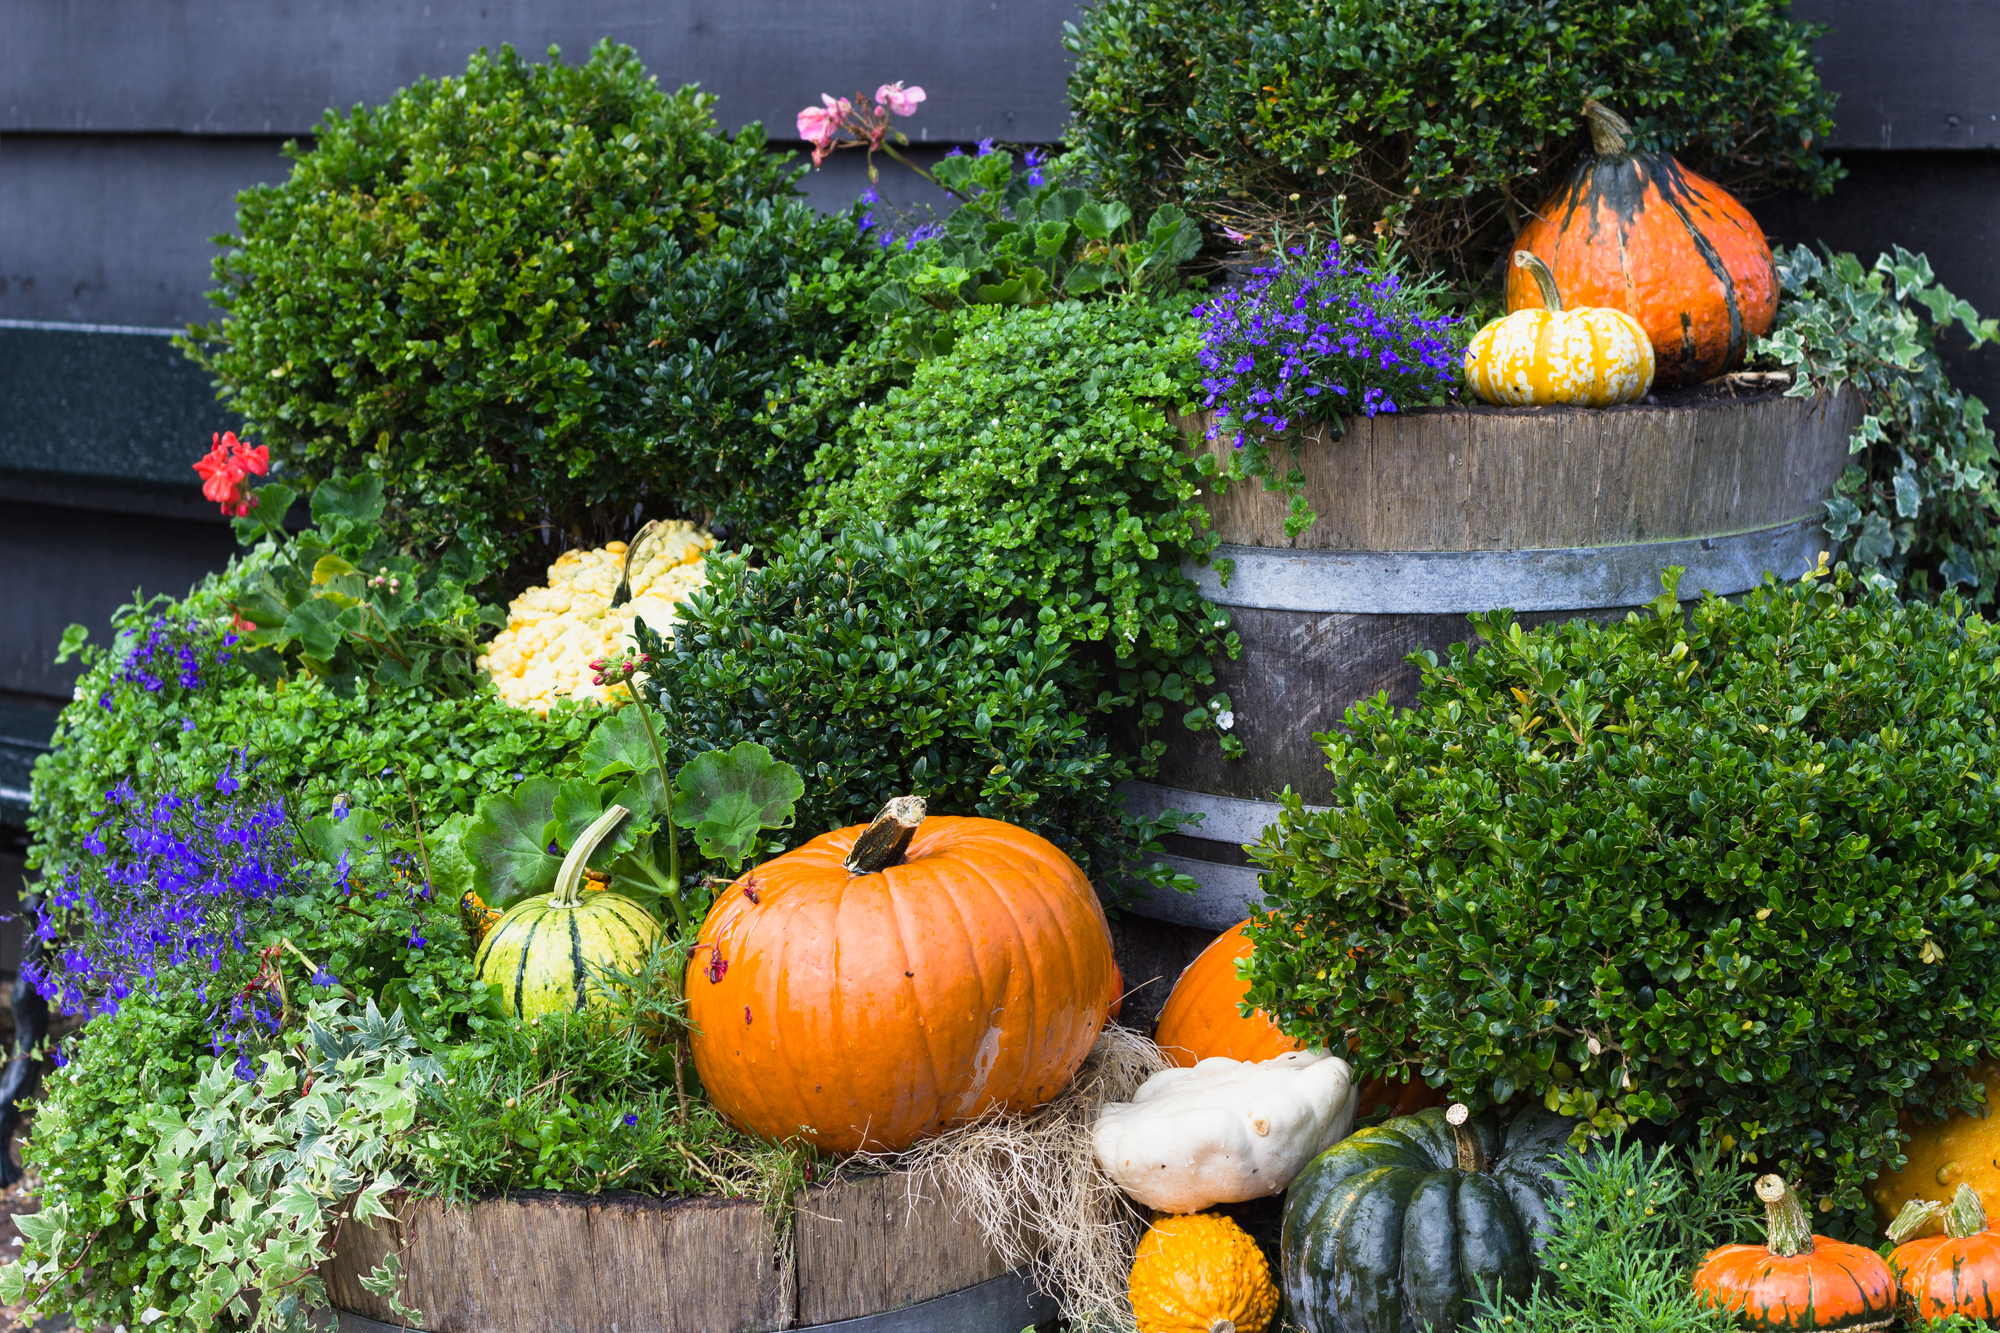 Fall Landscaping Tips 3 fall landscape tips from professional landscaping contractors